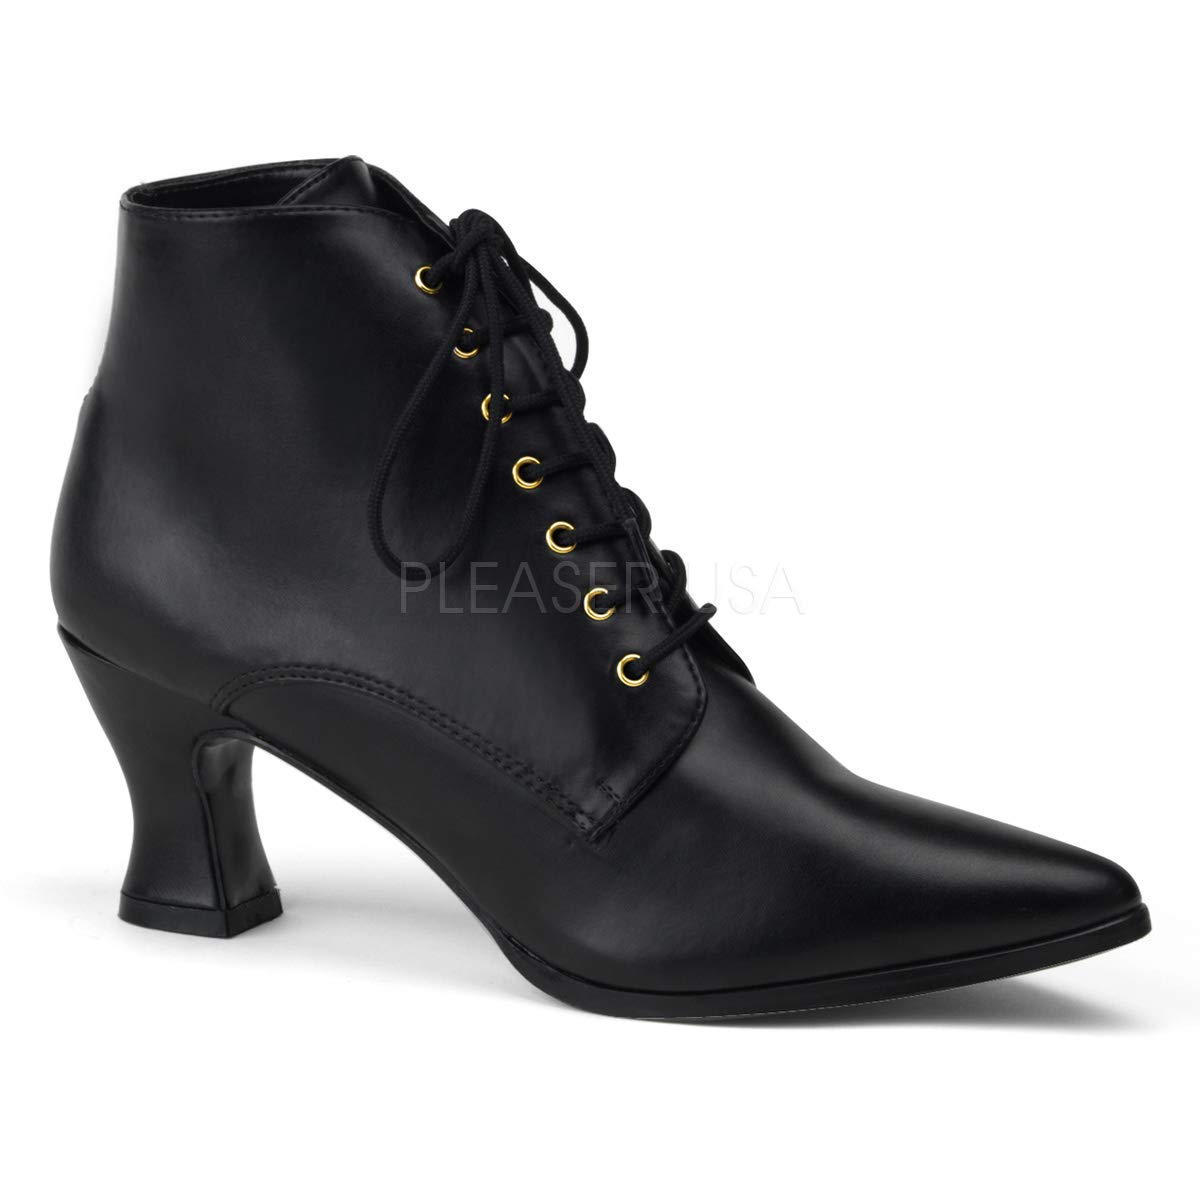 Funtasma by Pleaser Women's Victorian-35 Victorian Ankle Boot,Black,8 M US